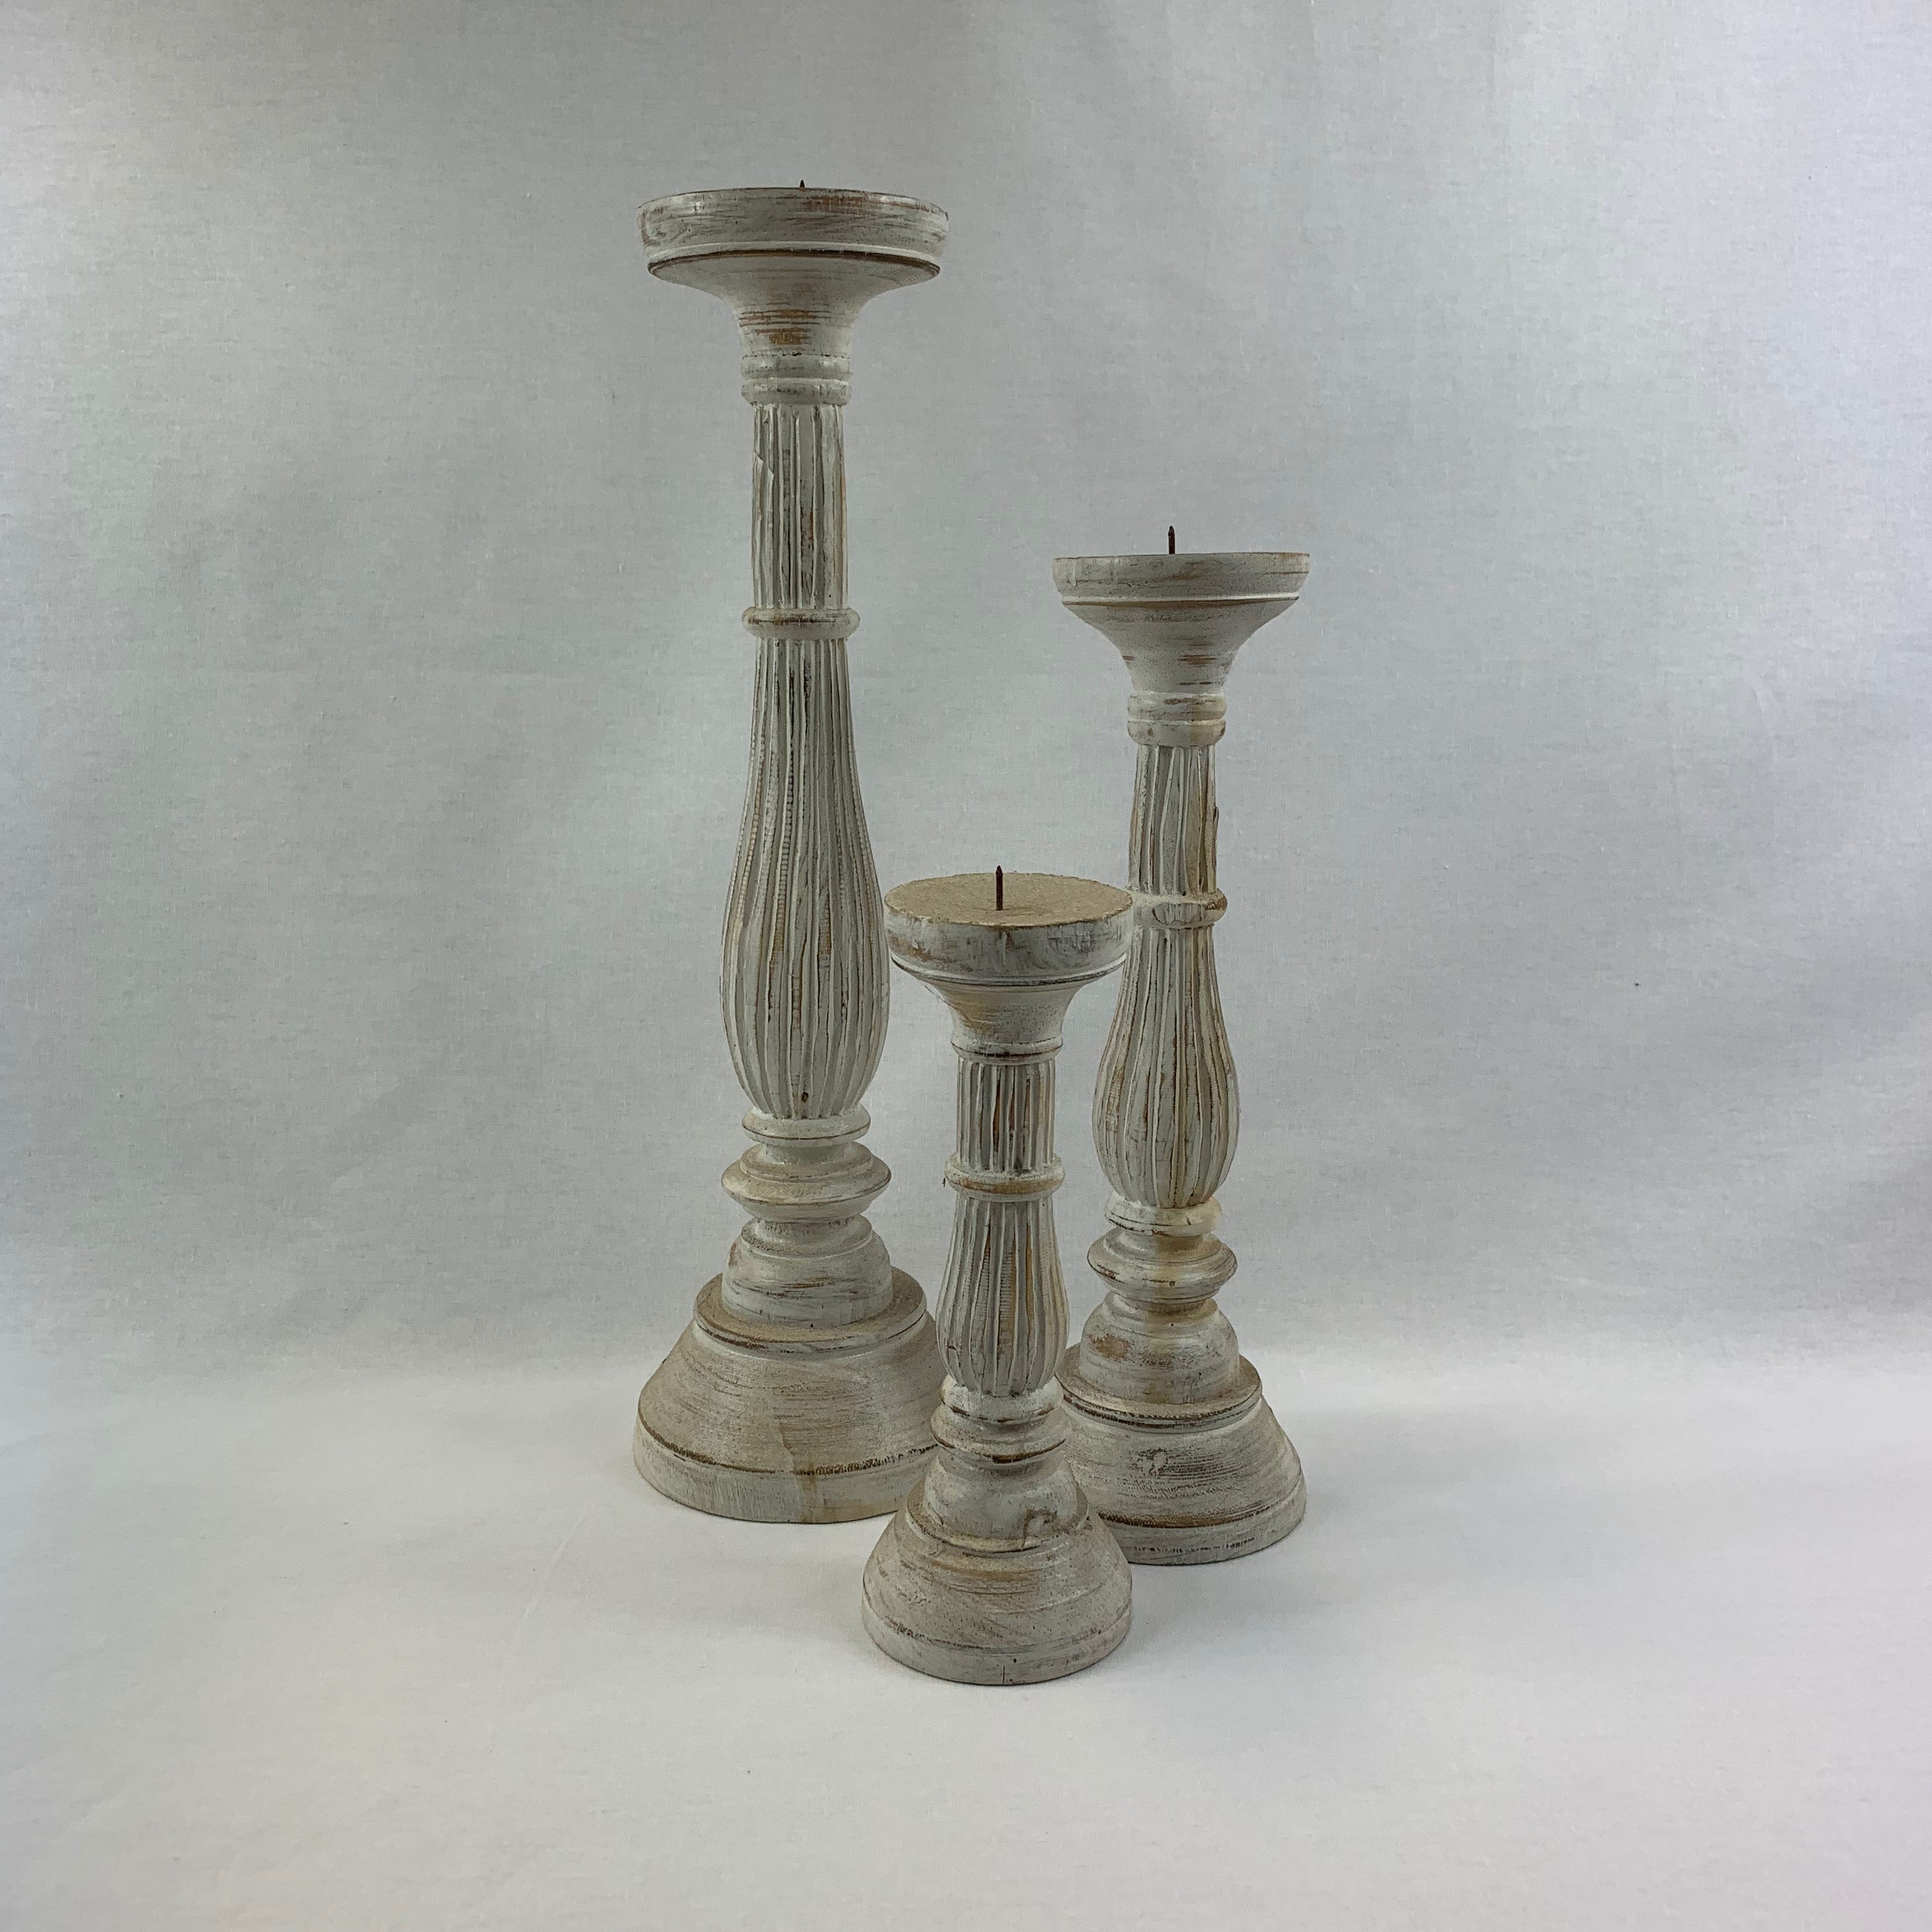 SET OF 3 WOODEN CANDLESTICK HOLDERS